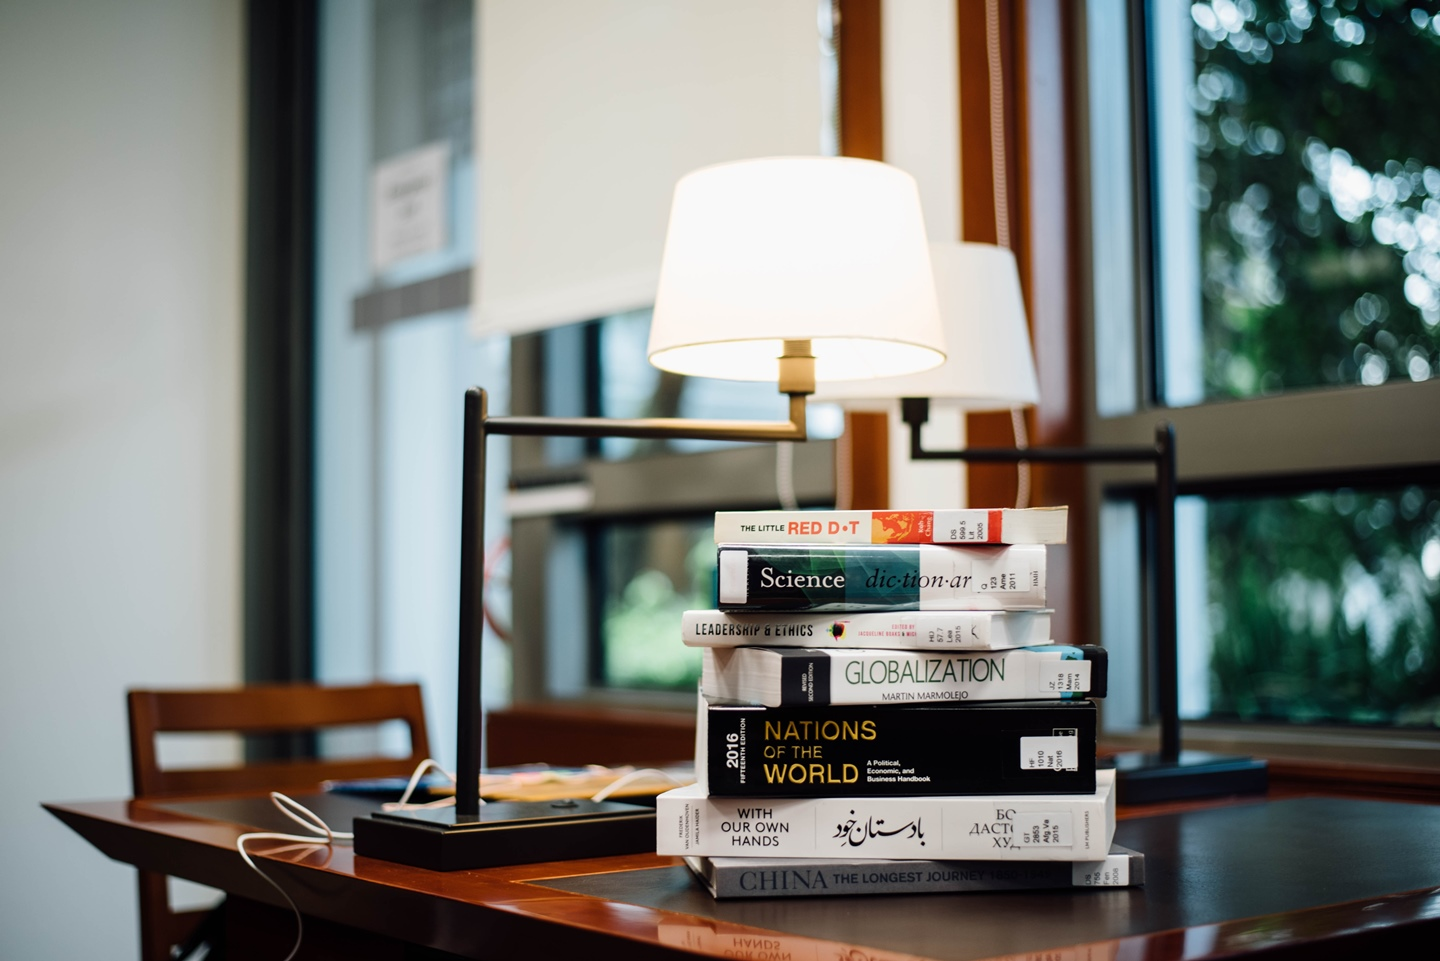 books arranged on the table under a lamp